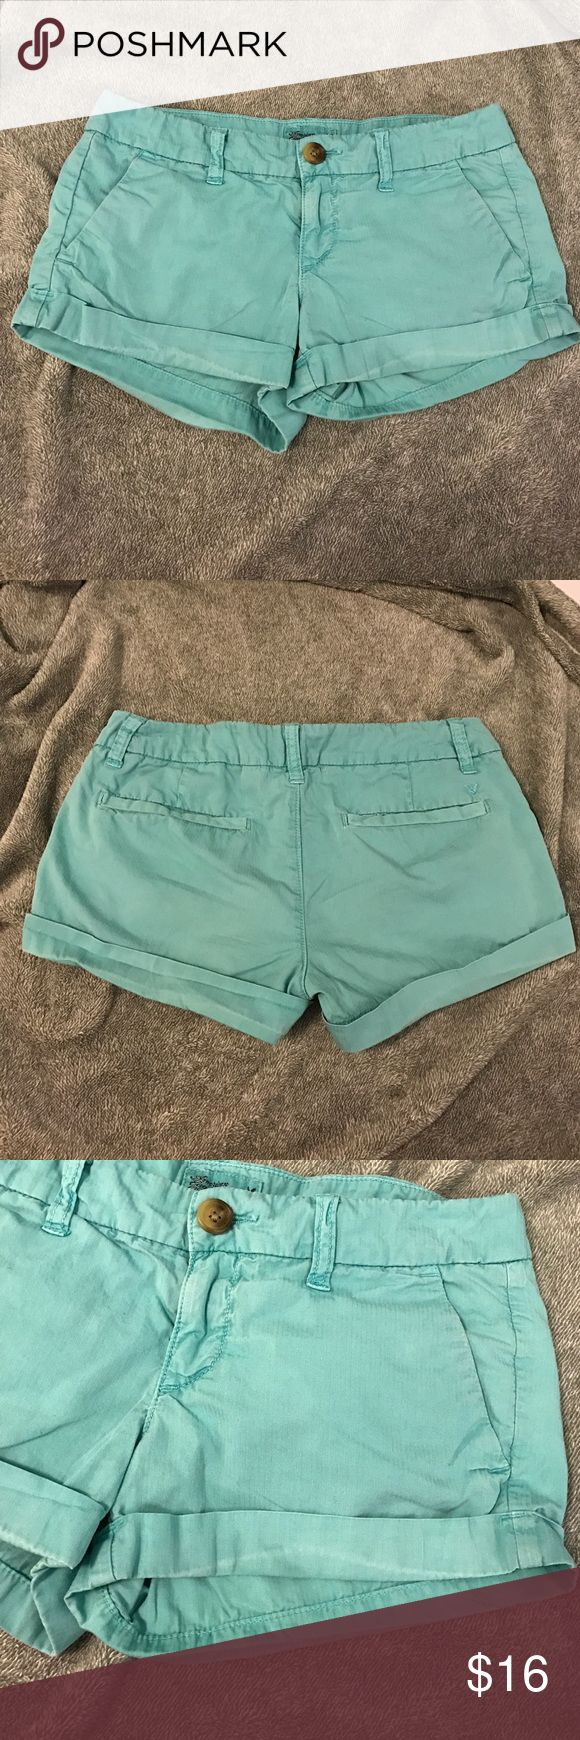 American eagle 00 turquoise shorts Great condition, light wear! Only defect is the slight discoloration from the crease in the shorts at the bottom from rolling. Shown in pictures. I'm sure it will come out with a wash and proper ironing! Very comfortable and cute for any summer day American Eagle Outfitters Shorts